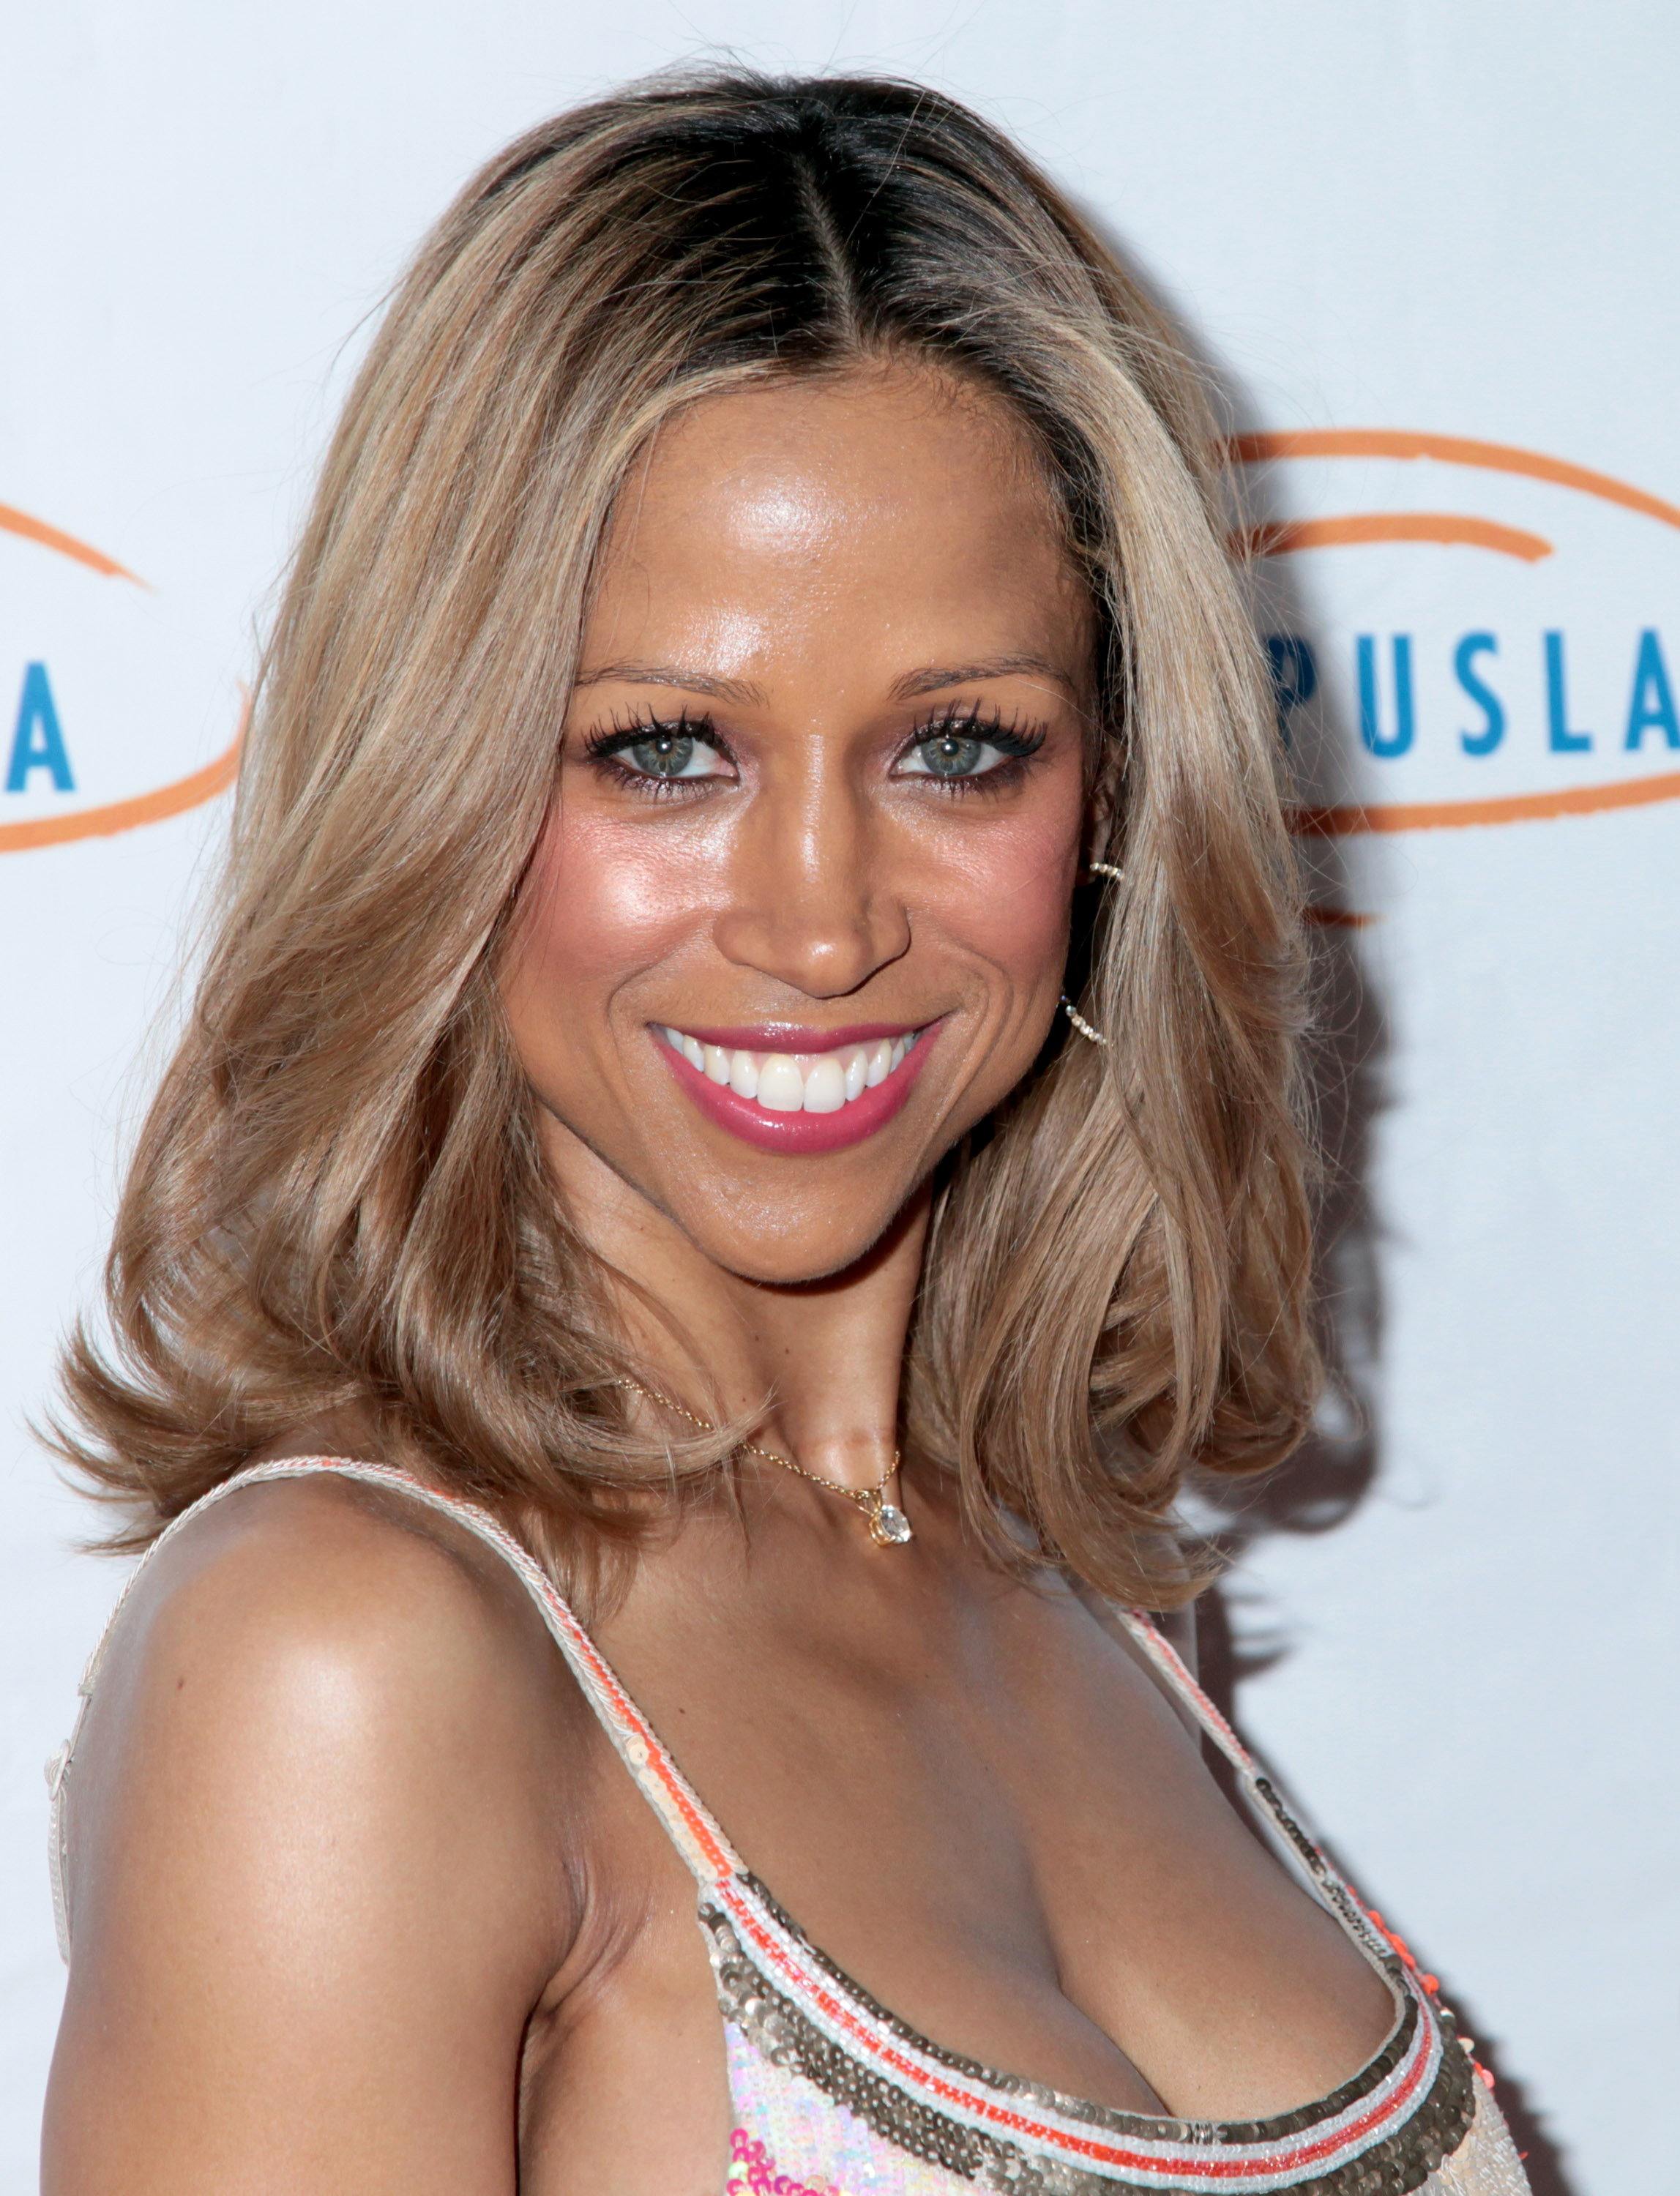 Actress Stacey Dash arriving at the14th Annual Lupus LA Orange Ball at Regent Beverly Wilshire Hotel on May 8, 2014 in Beverly Hills, California.